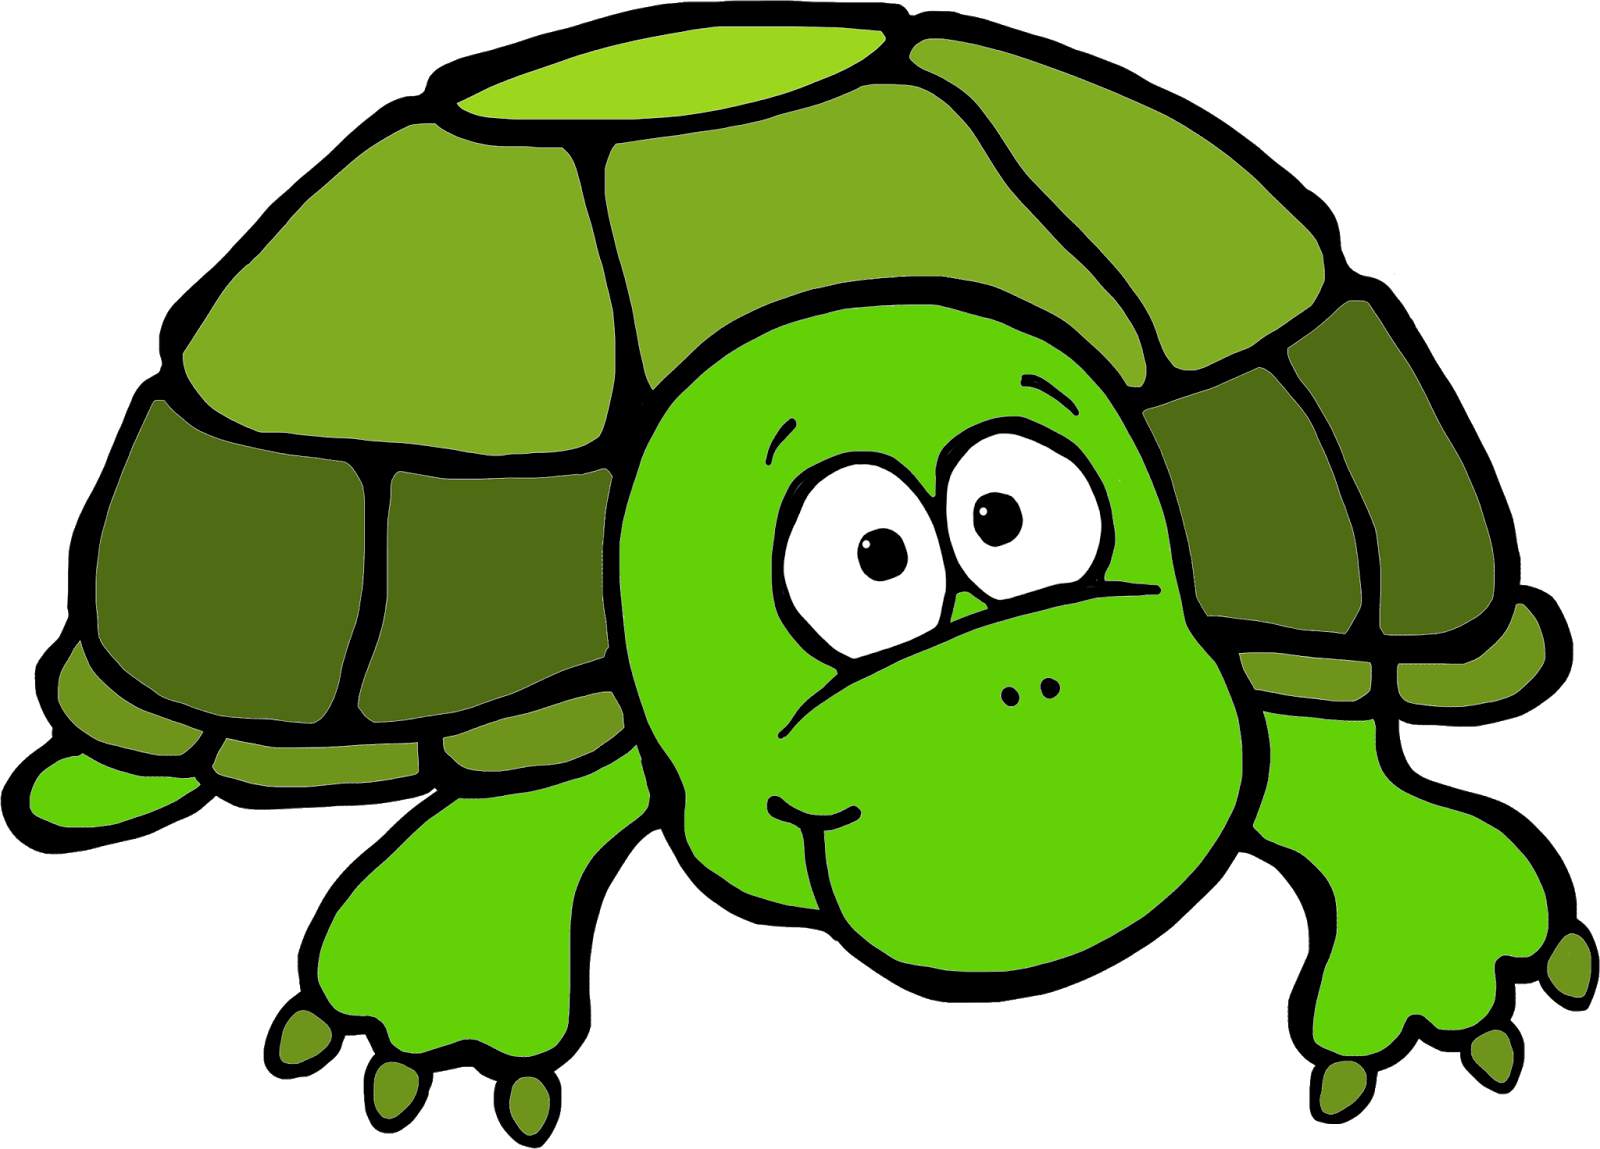 Turtles Clipart | Free download best Turtles Clipart on ClipArtMag.com graphic transparent